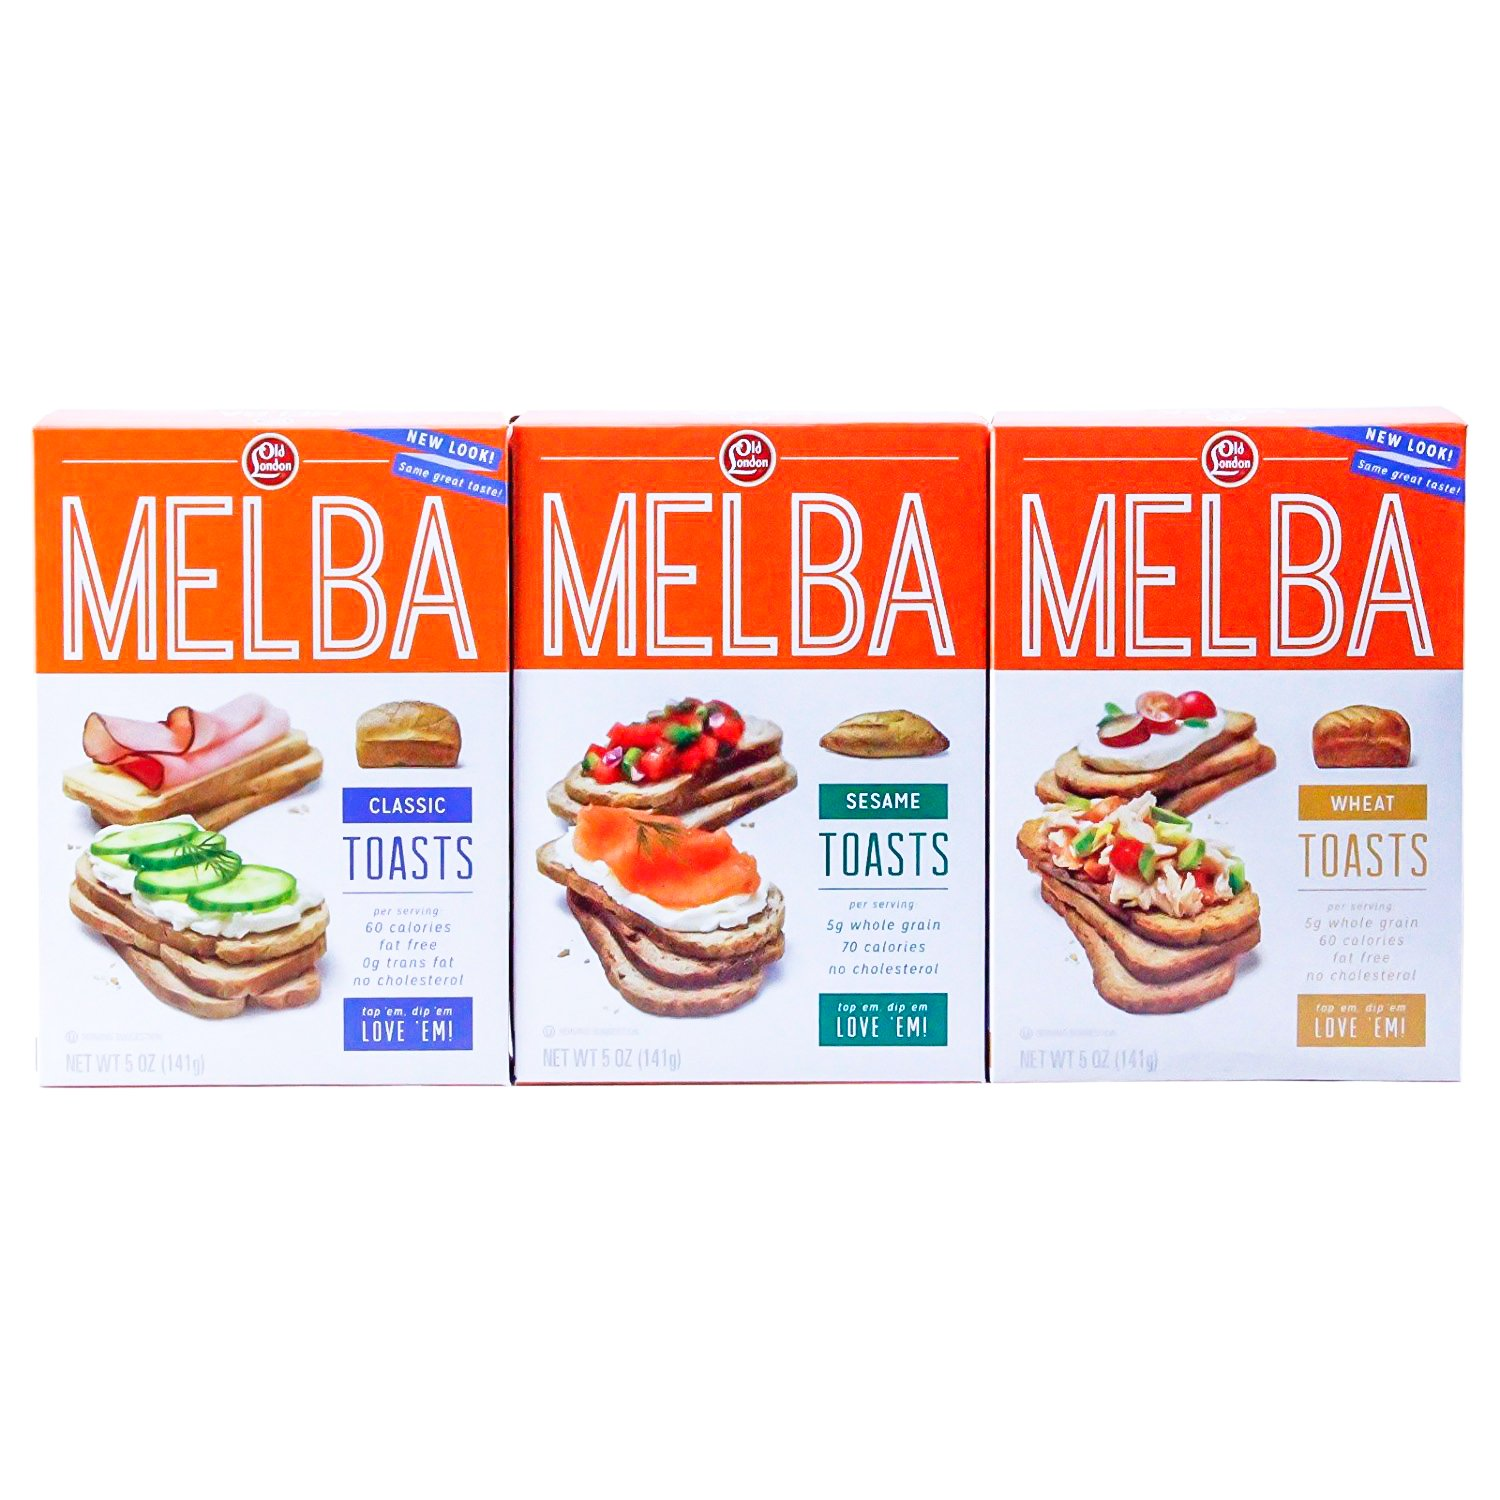 Old London - Melba Toast - Classic, Wheat, Sesame -VARIETY Pack -5 ounce (Pack of 3) by Old London